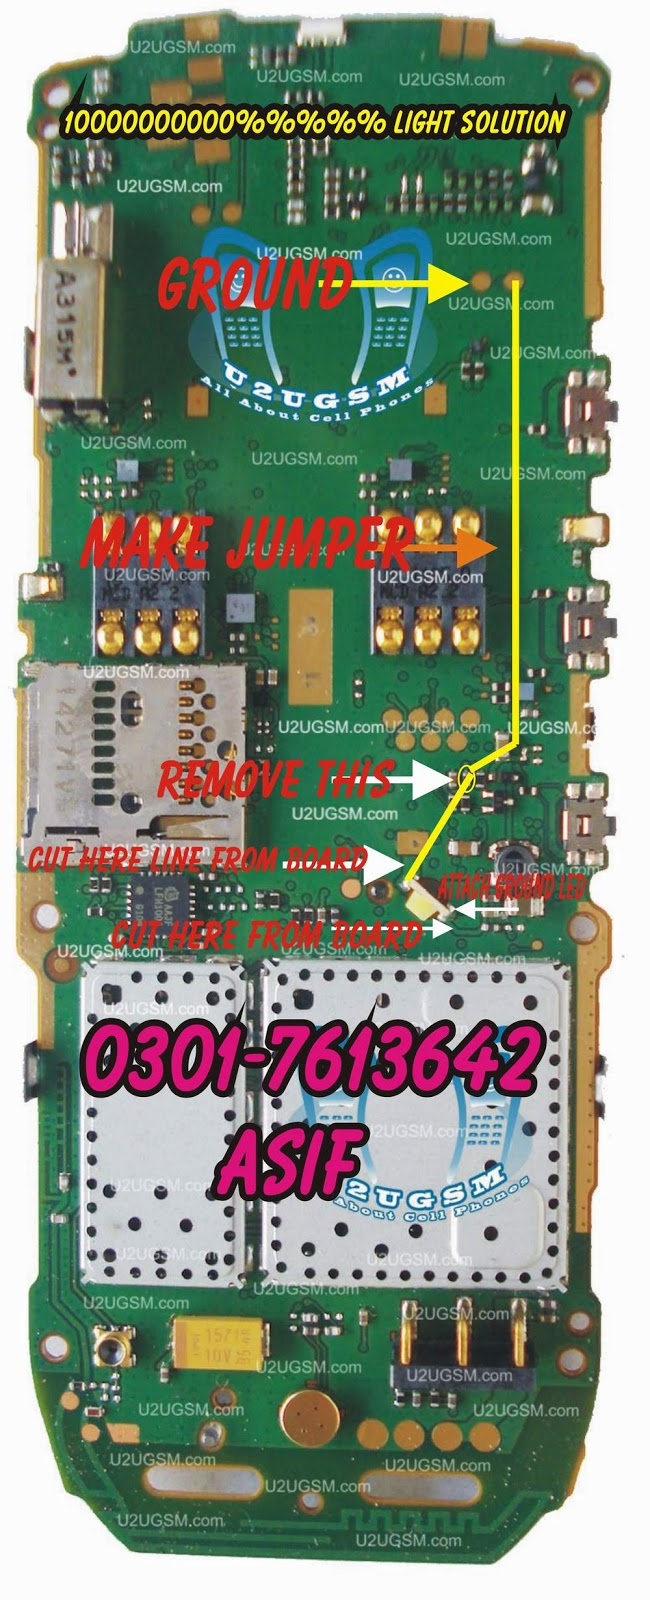 Nokia X1-01 light solution 1000% working solution